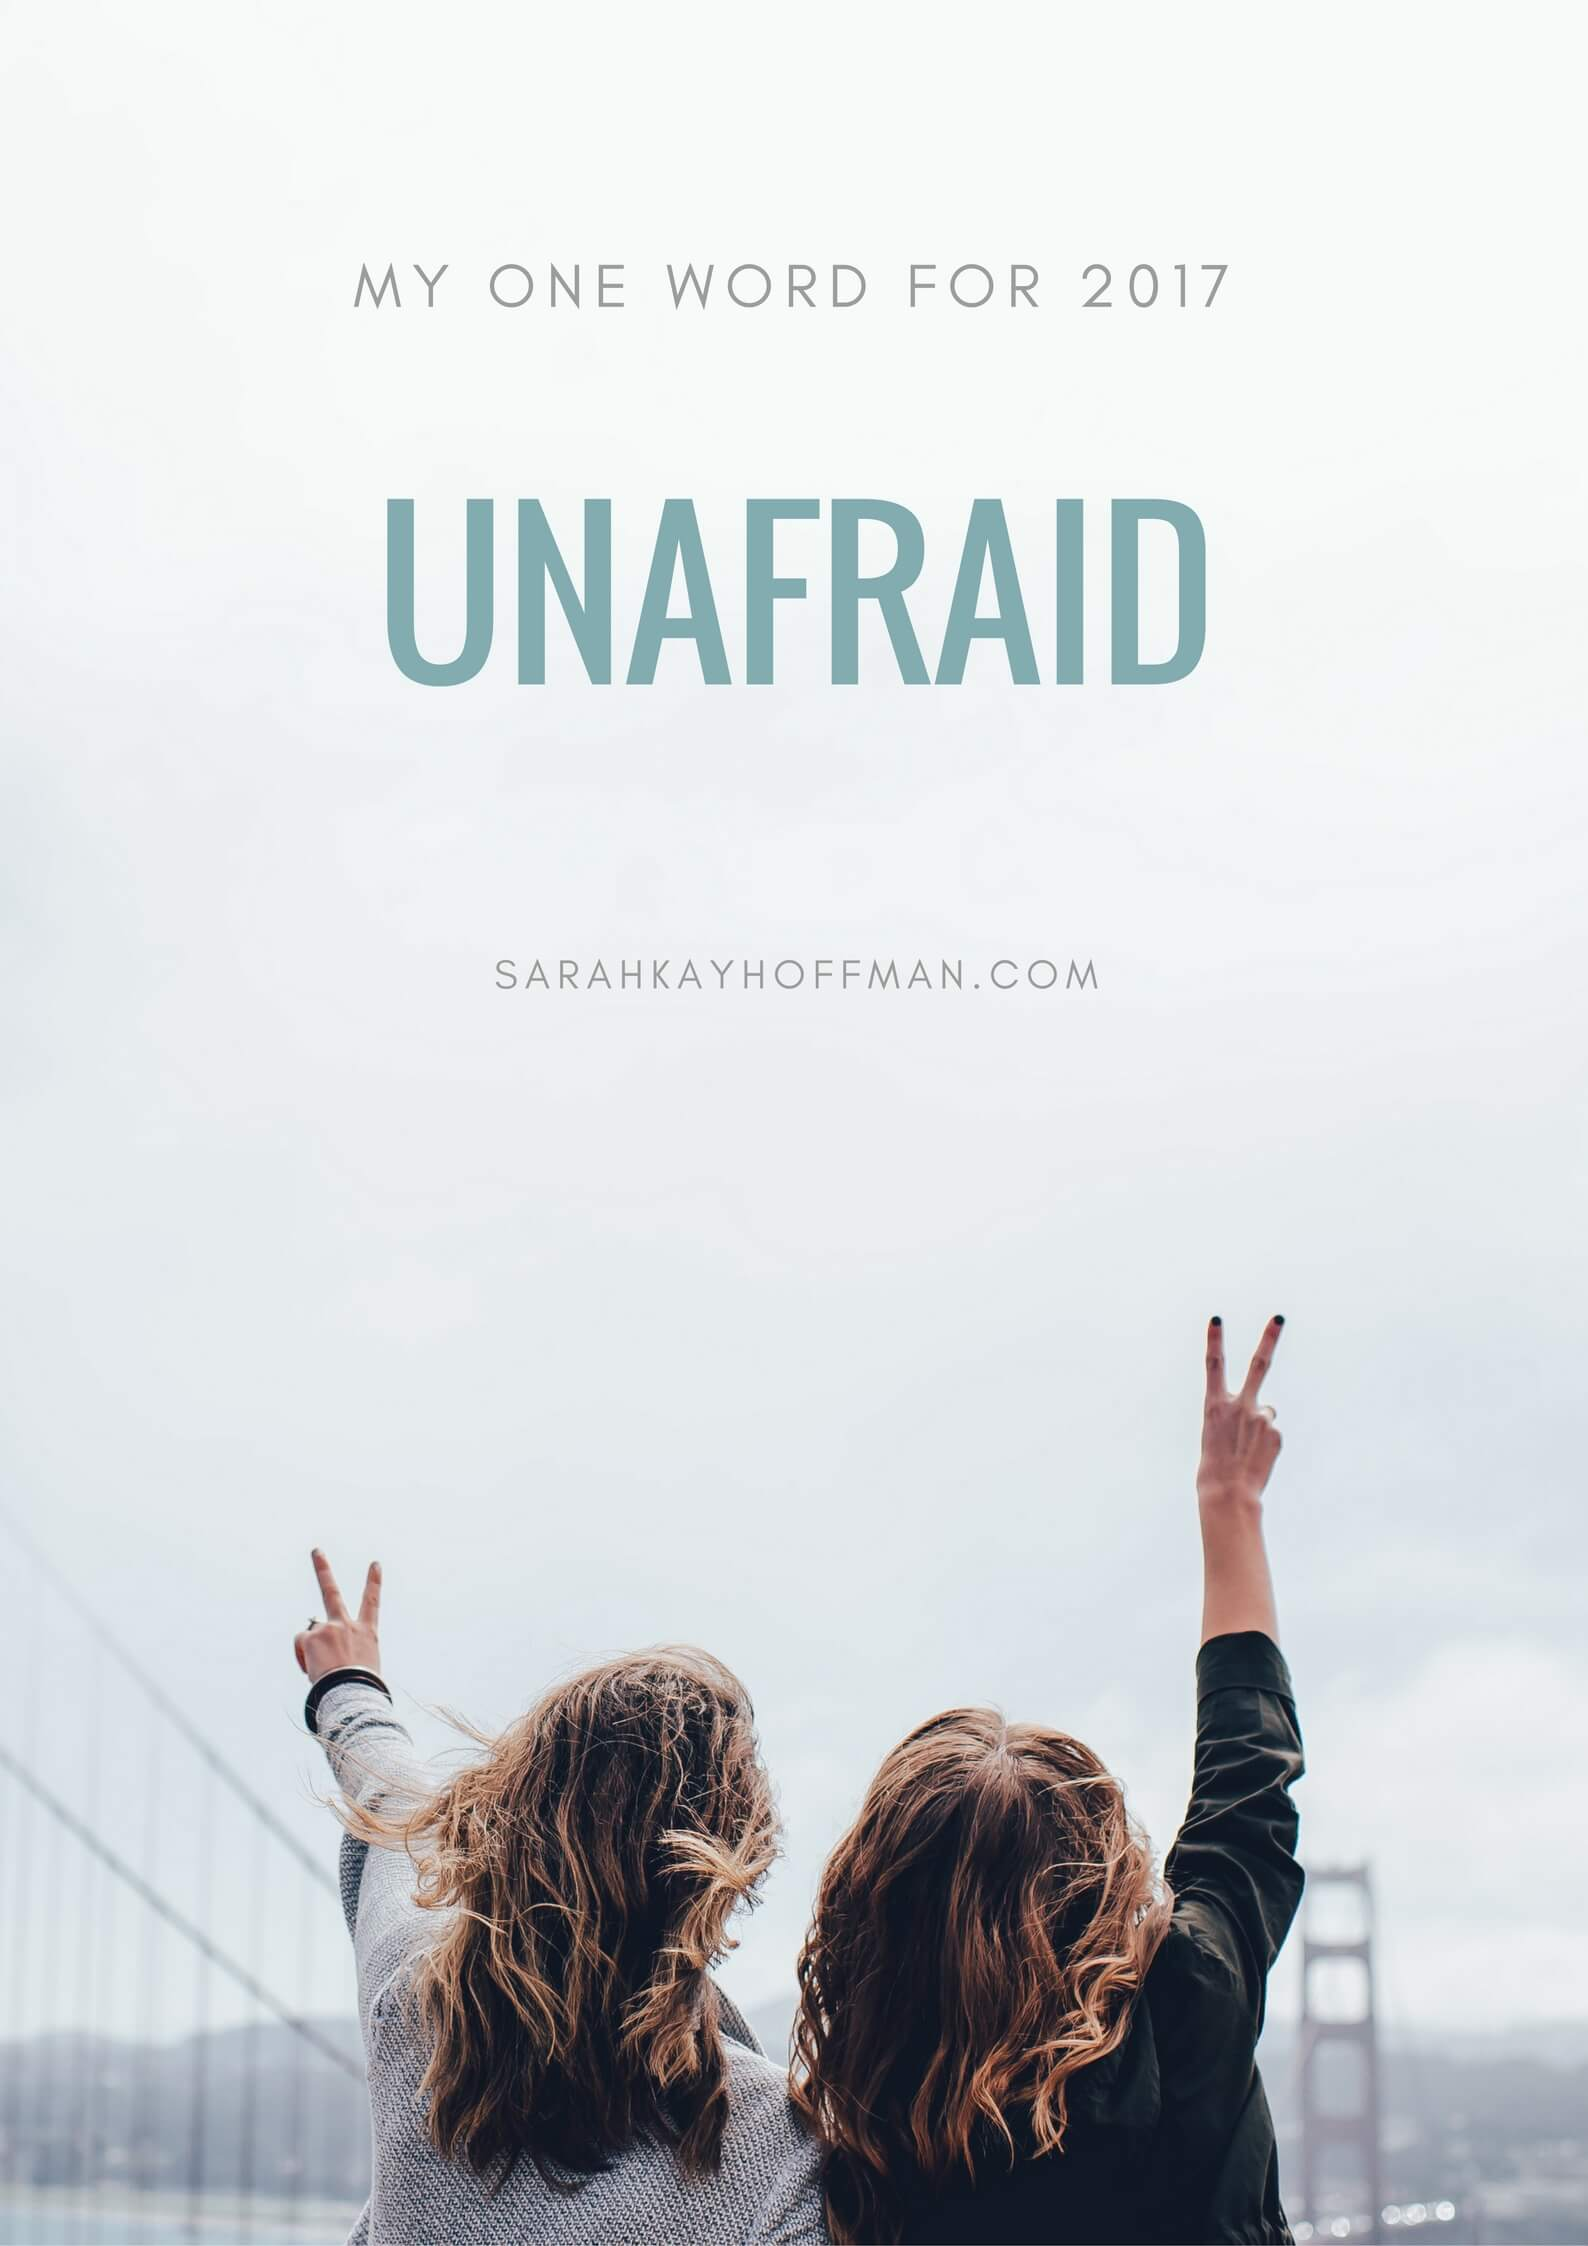 Unafraid sarahkayhoffman.com My One Word 2017